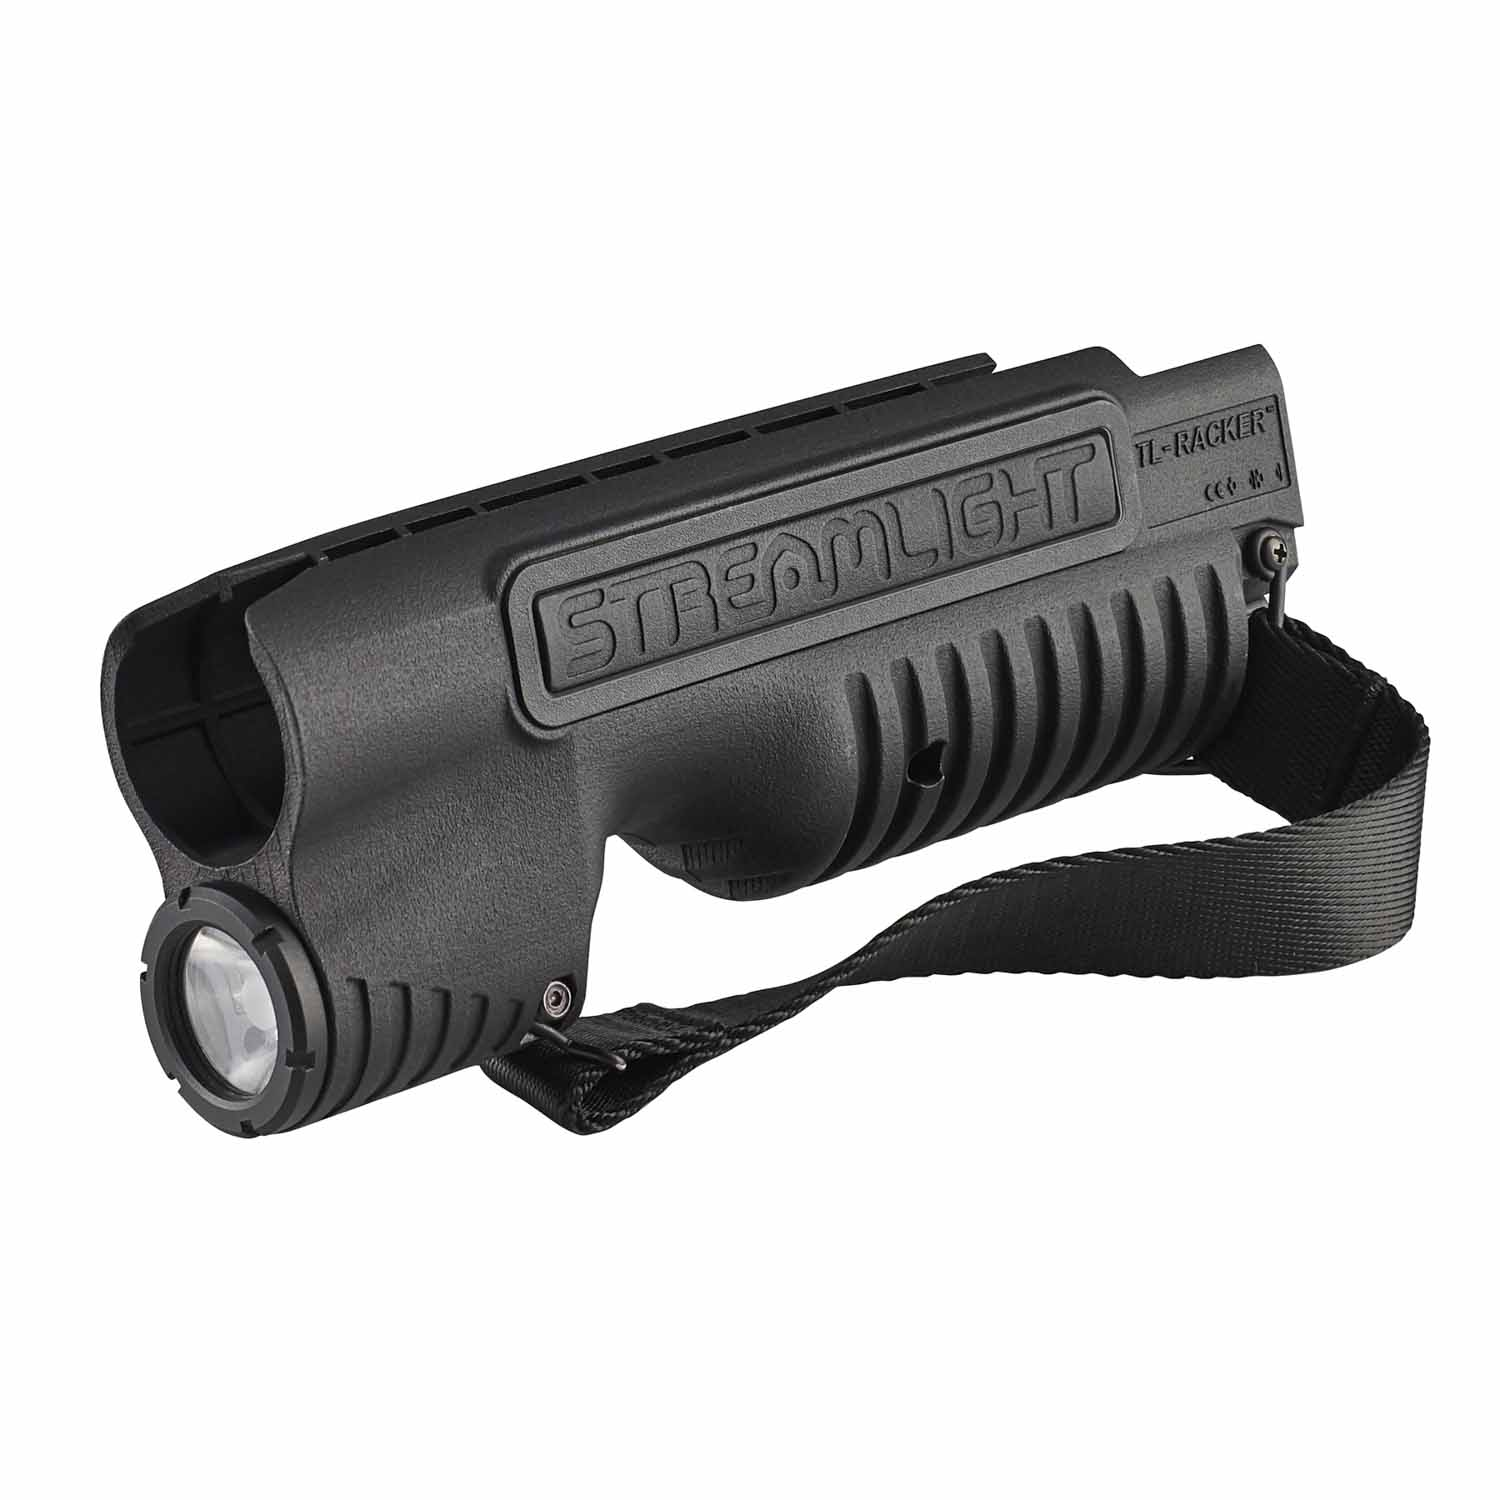 Streamlight TL-Racker Shotgun Forend Light - Mossberg Shockw